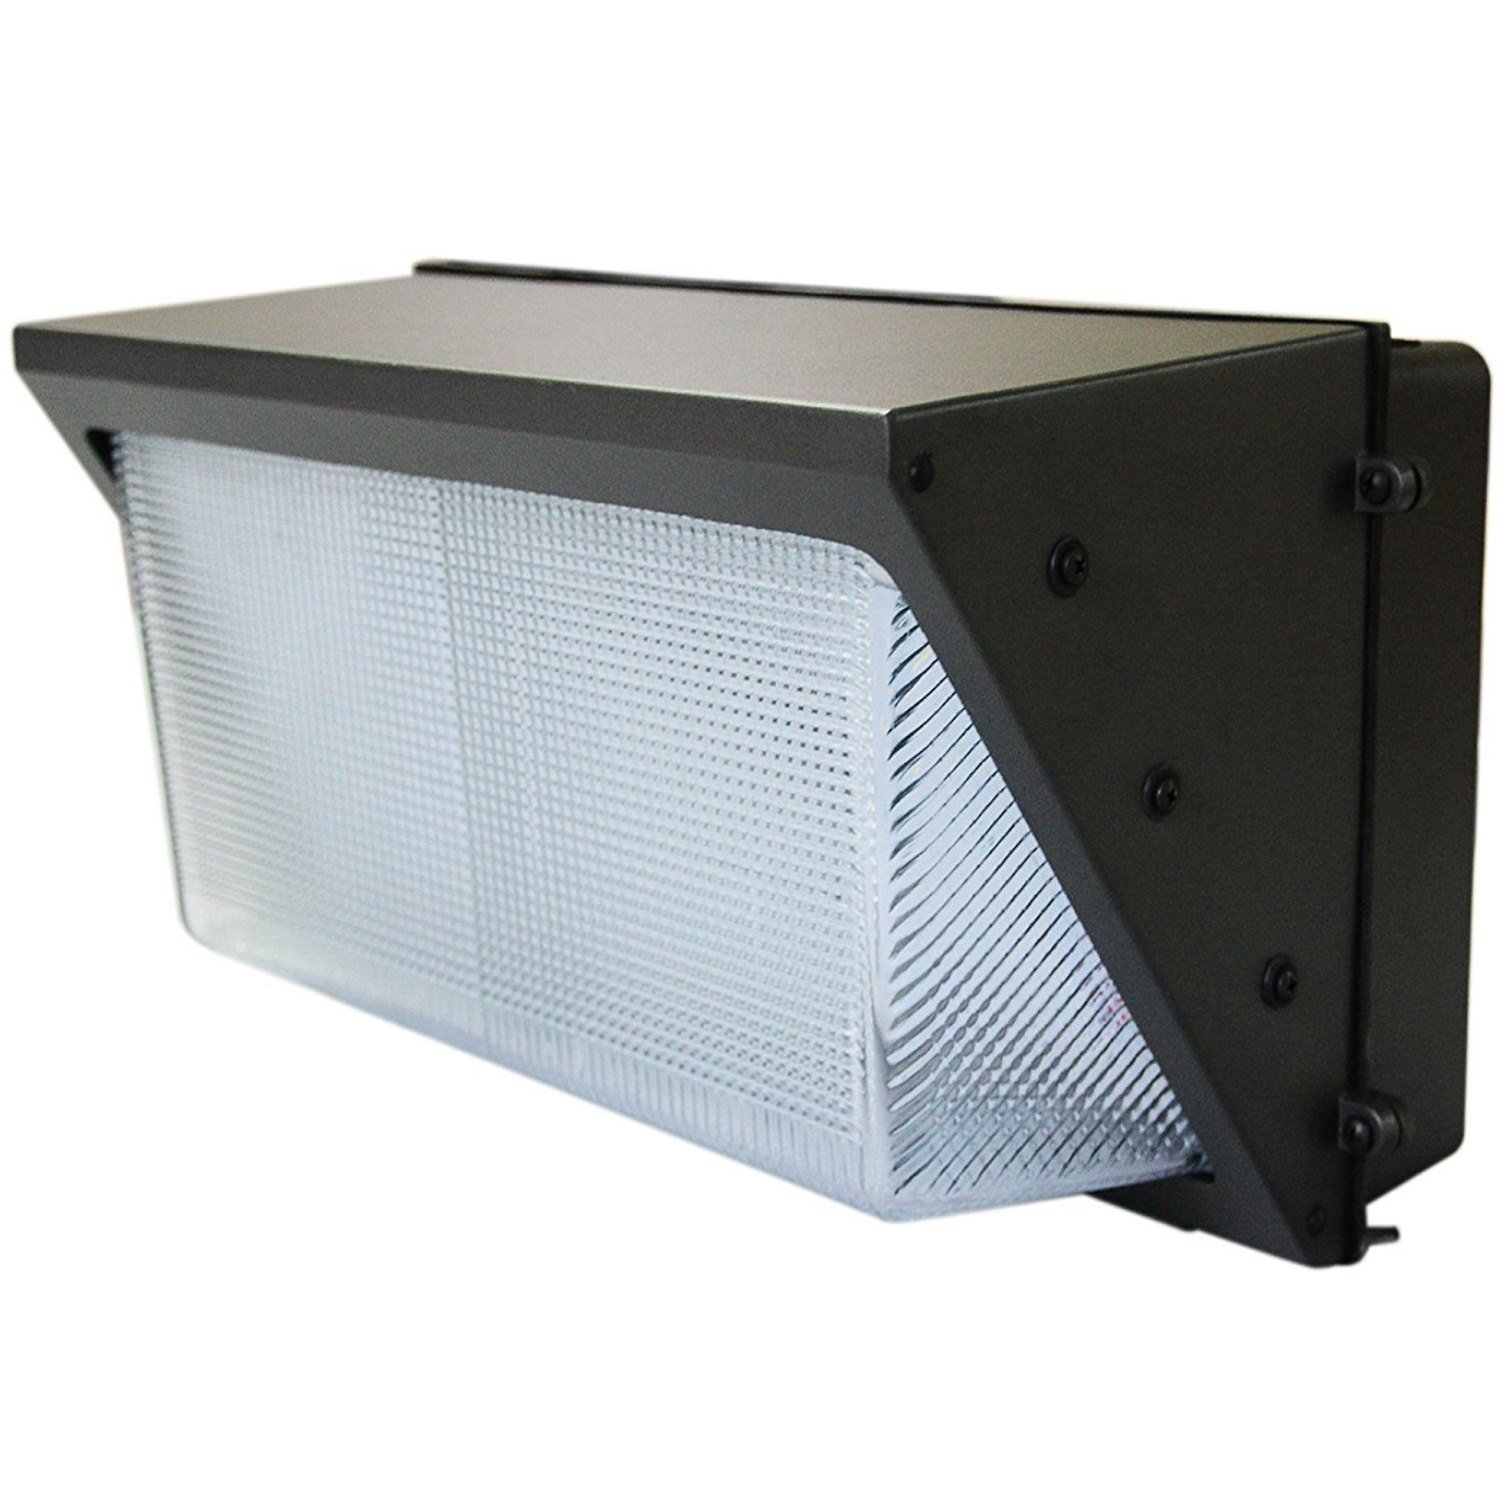 100W LED Wall Pack (300-400 Watt HPS/HID Replacement) 5000K (Daylight), Commercial Grade, Glass Lens, Outdoor Lighting Fixture, UL Listed DLC Qualified by US Green Lighting